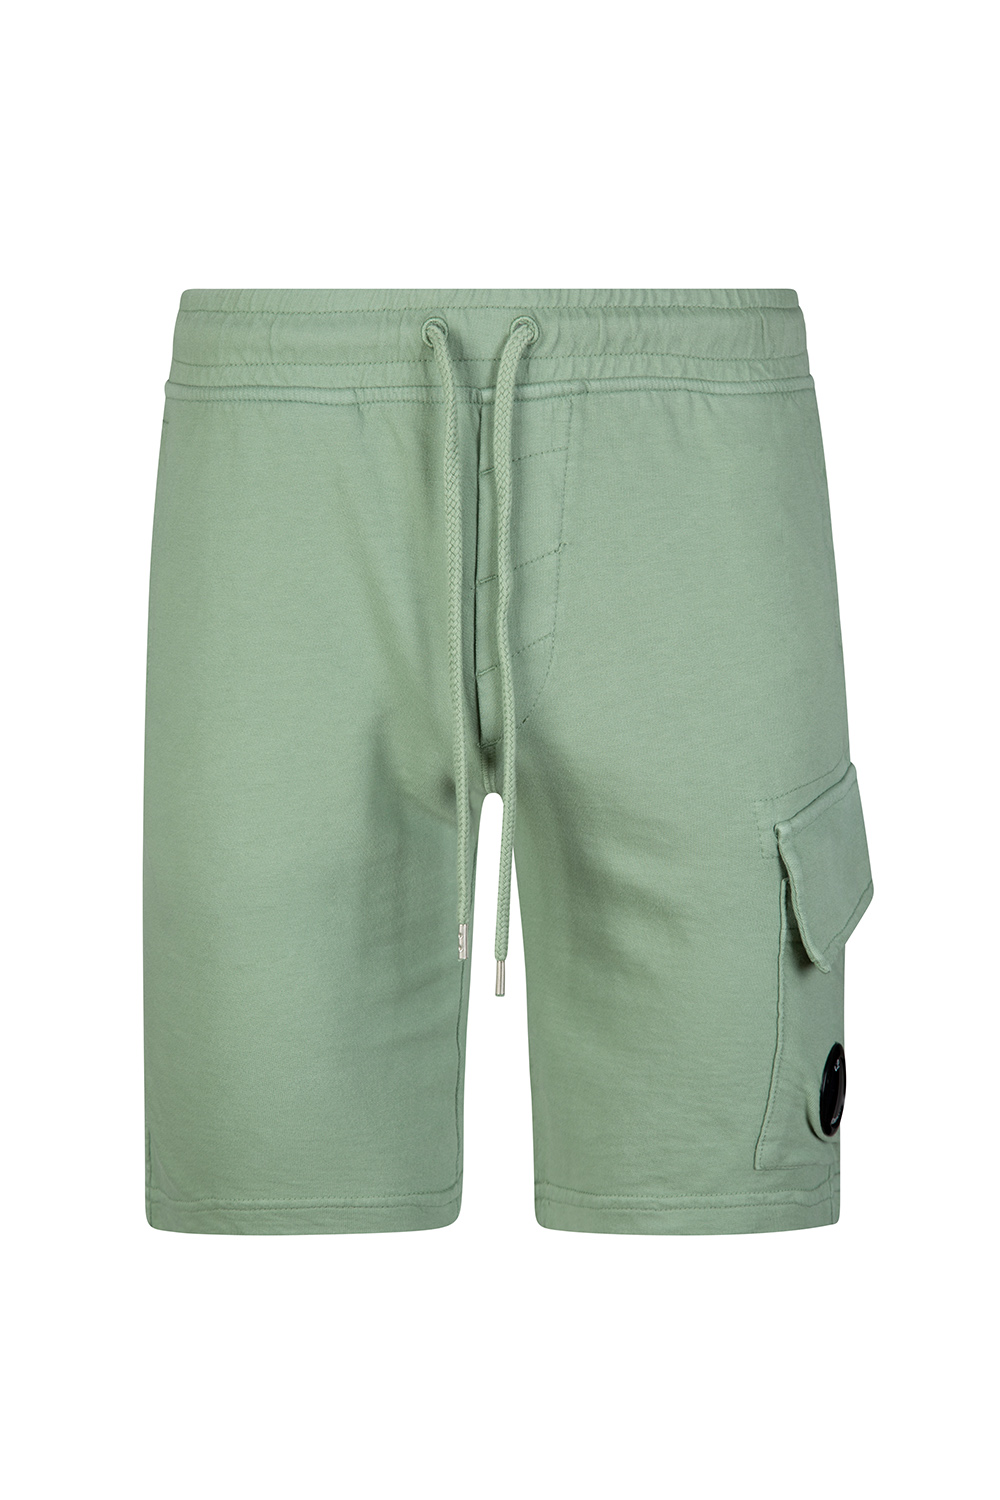 dea7433cd1 C.P. Company Men's Cotton Bermuda Shorts Green | Linea Fashion